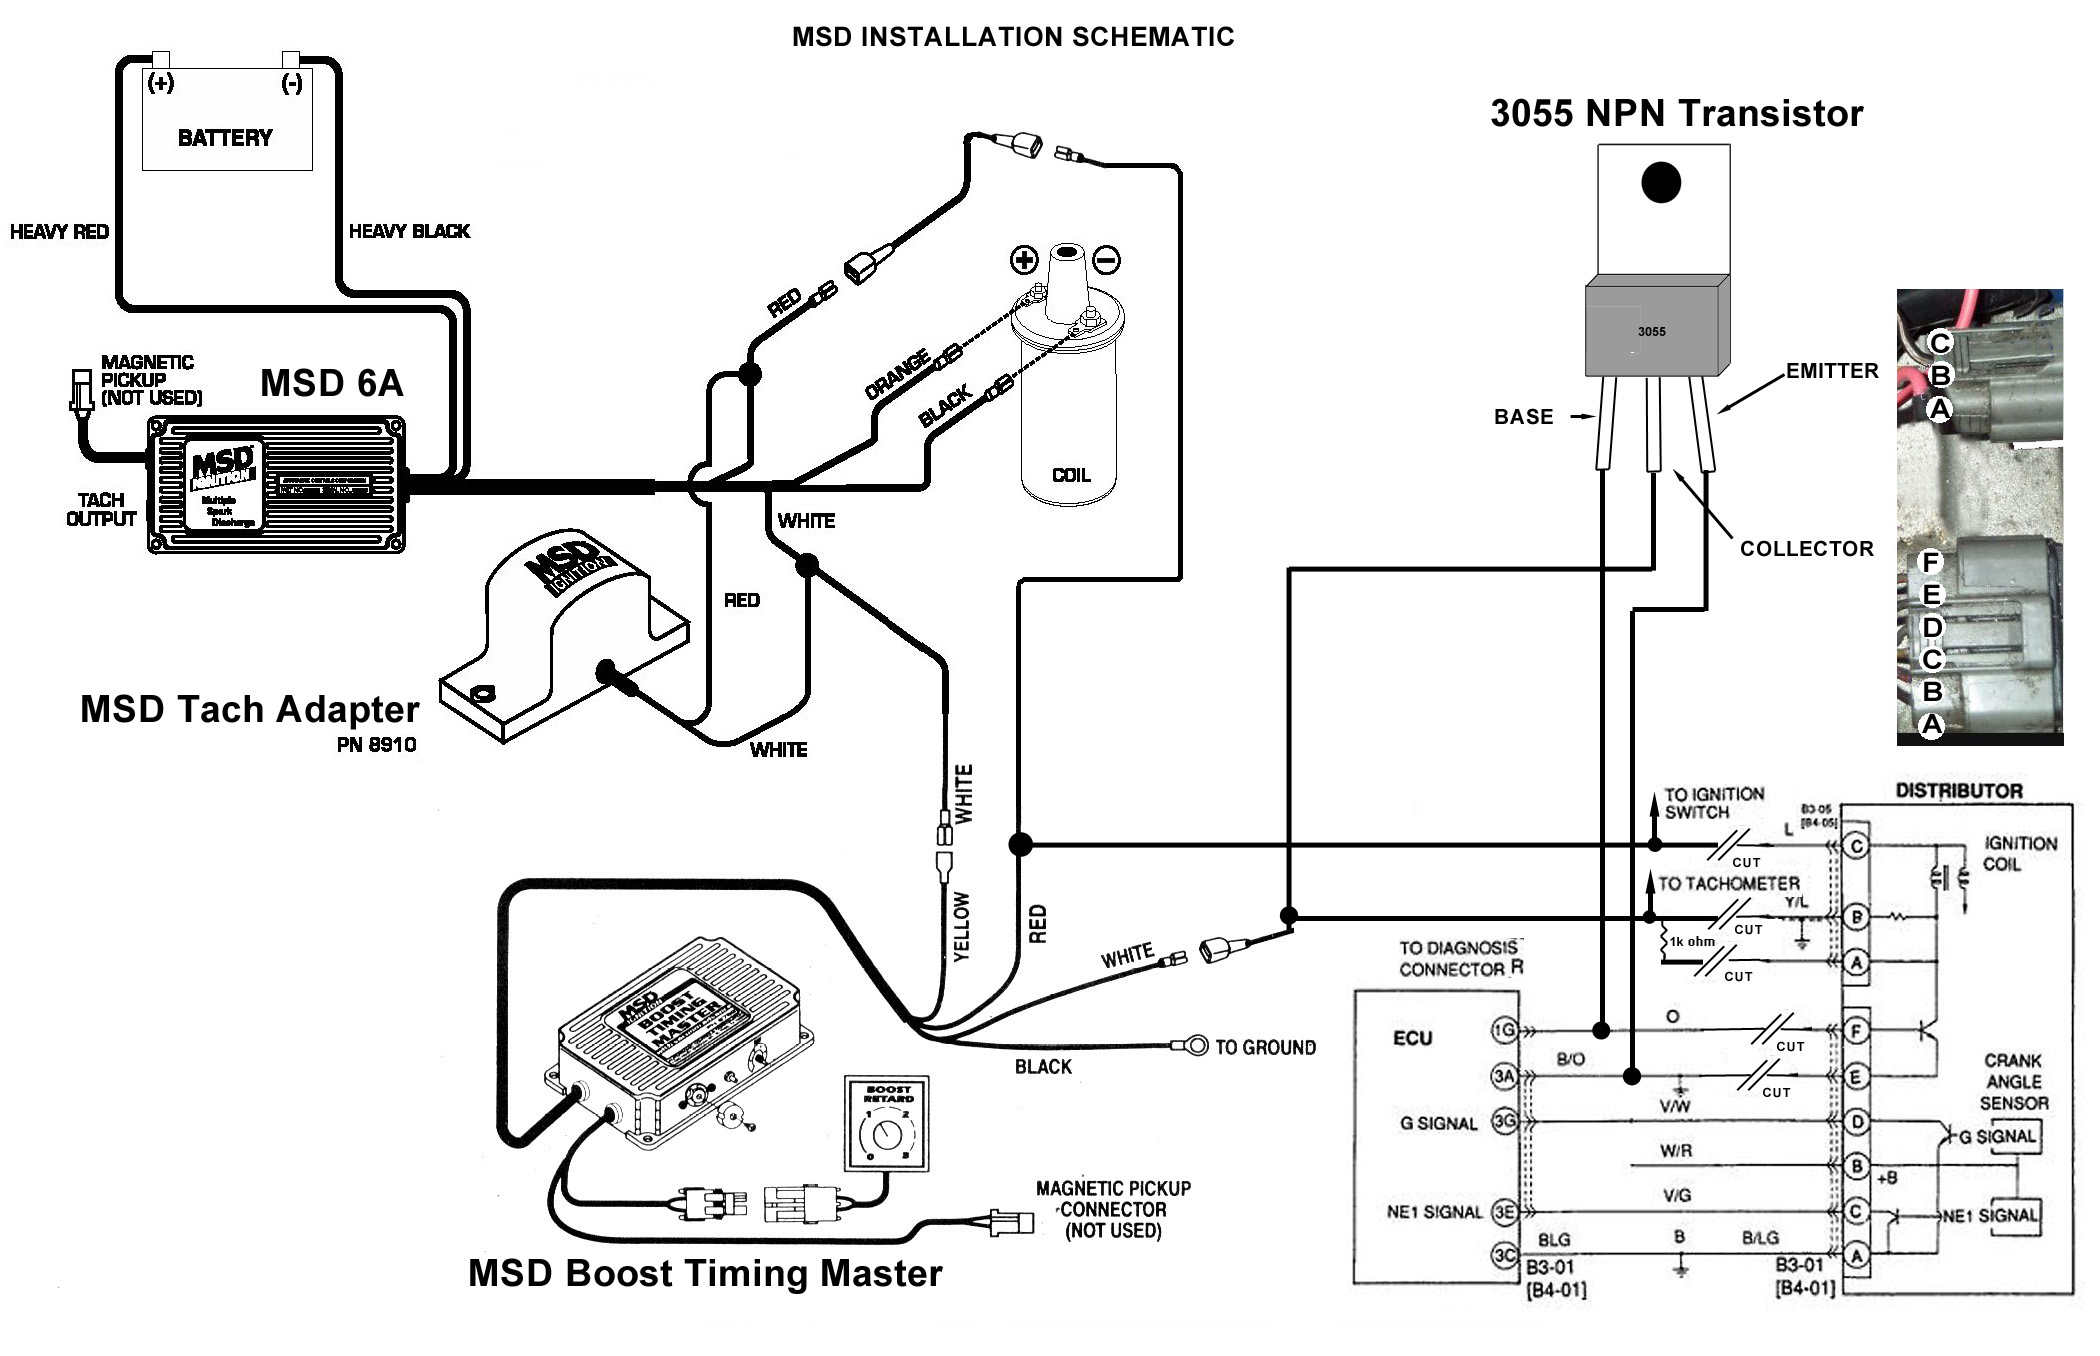 Wiring Harness Mazda Mx 6 Diagram Libraries Ford Maverick Wire Mx6 Third Levelmazda Simple Schema